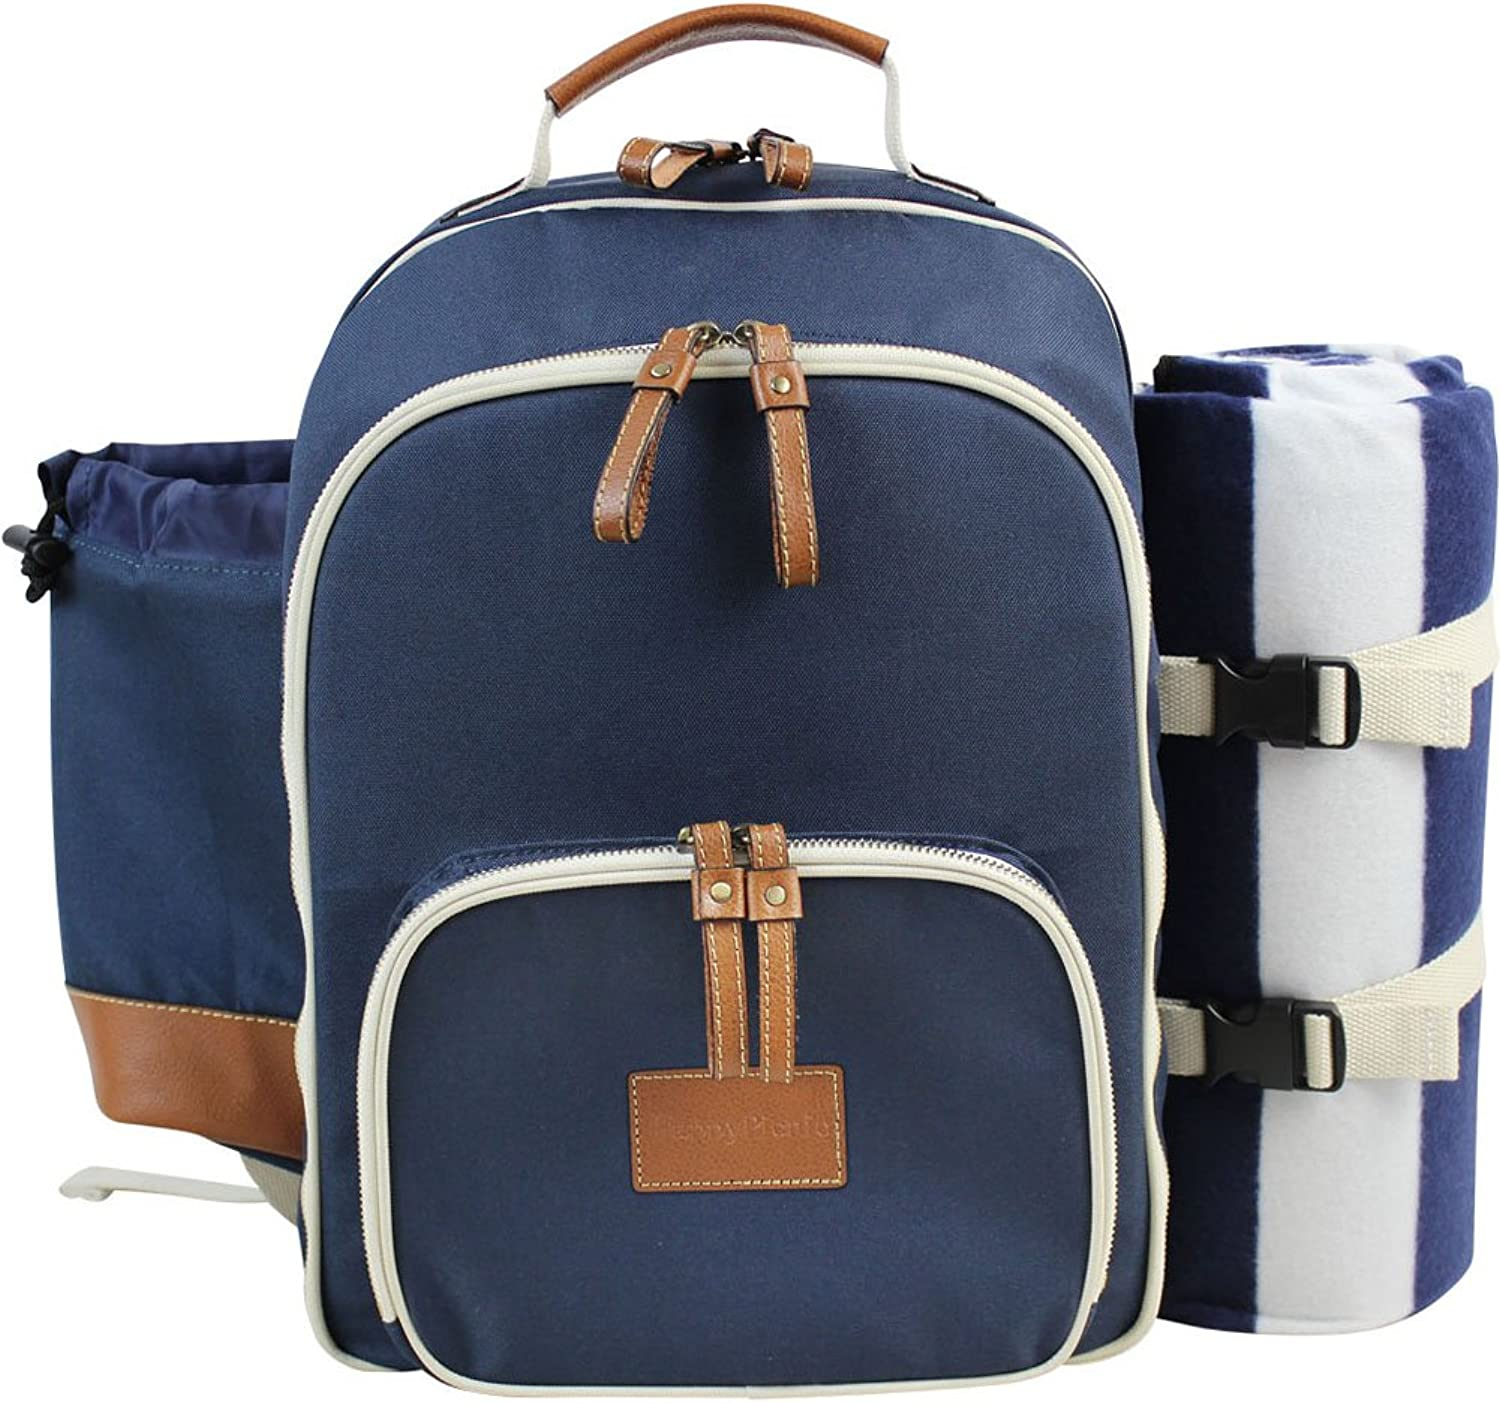 INNO STAGE Insulated Picnic Backpack for 4 Persons with Full Stainless Cutlery Set, Roomy Cooler Compartment, Bottle Holder and Large Waterproof Mat (Navy blueee)